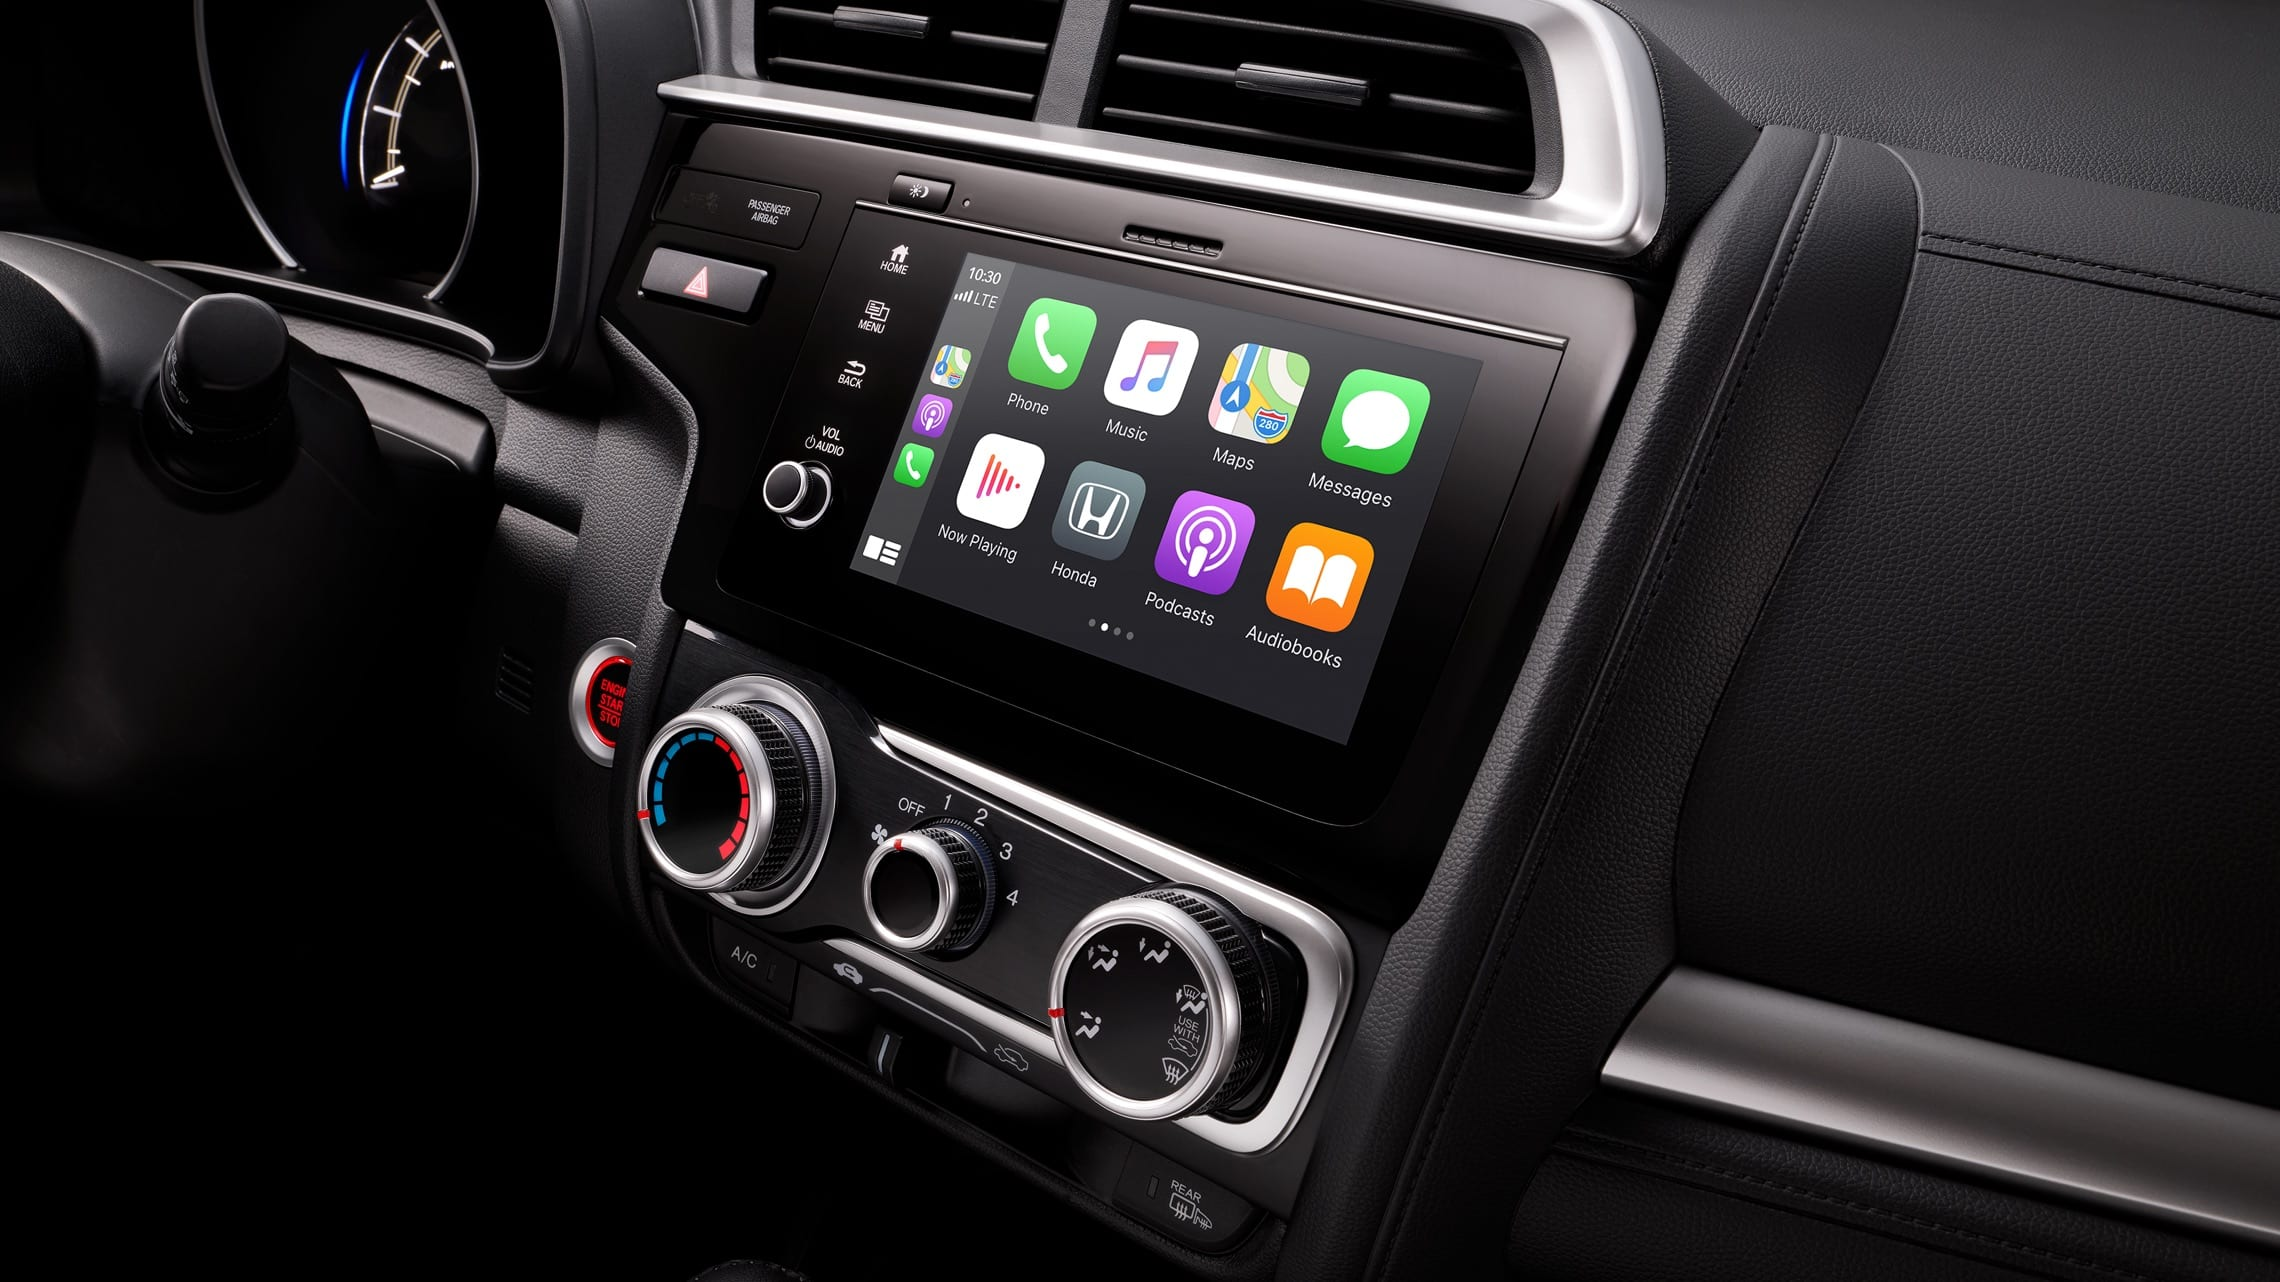 Detalle del sistema de audio en pantalla táctil con Apple CarPlay™ en el Honda Fit 2020.